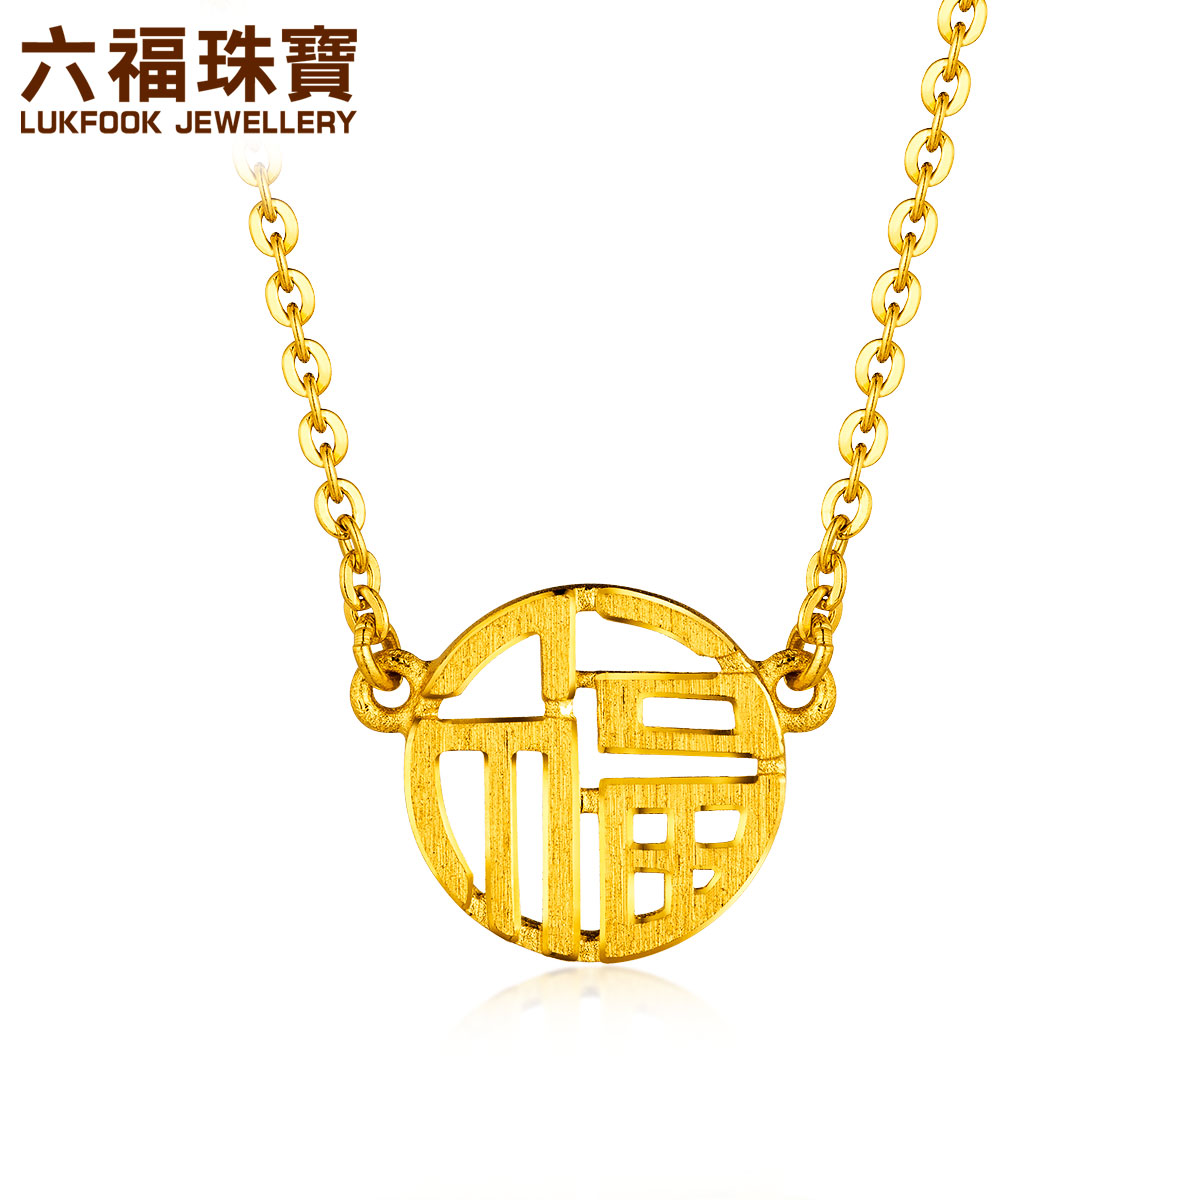 Usd 47777 liufuku jewelry gold necklace female gold hollow liufuku jewelry gold necklace female gold hollow blessing pendant sets of chain with falling price l07tbgn0001a aloadofball Gallery